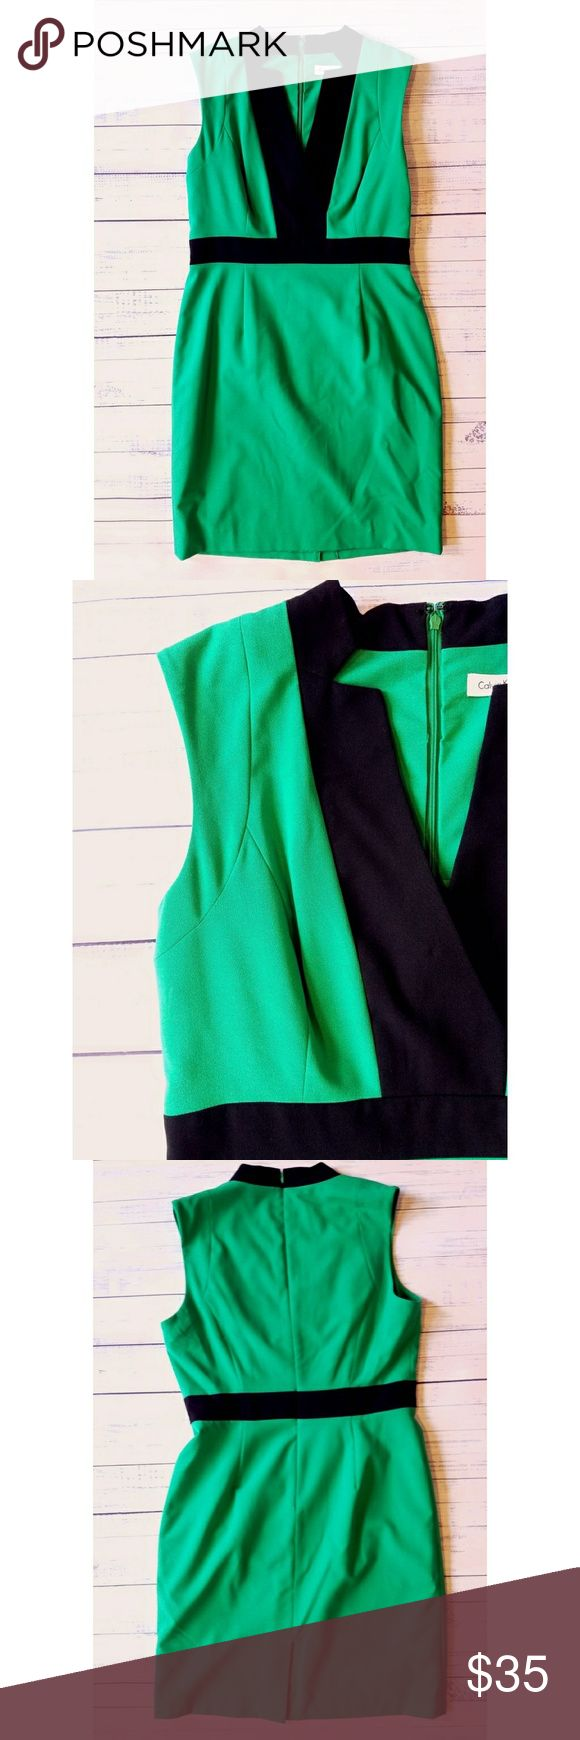 Calvin Klein Kelly Green Dress Lightly worn  Linned Zipper in back 21.5 inches from armpit to armpit  17.5 inch flat waist 39 inches long Calvin Klein Dresses